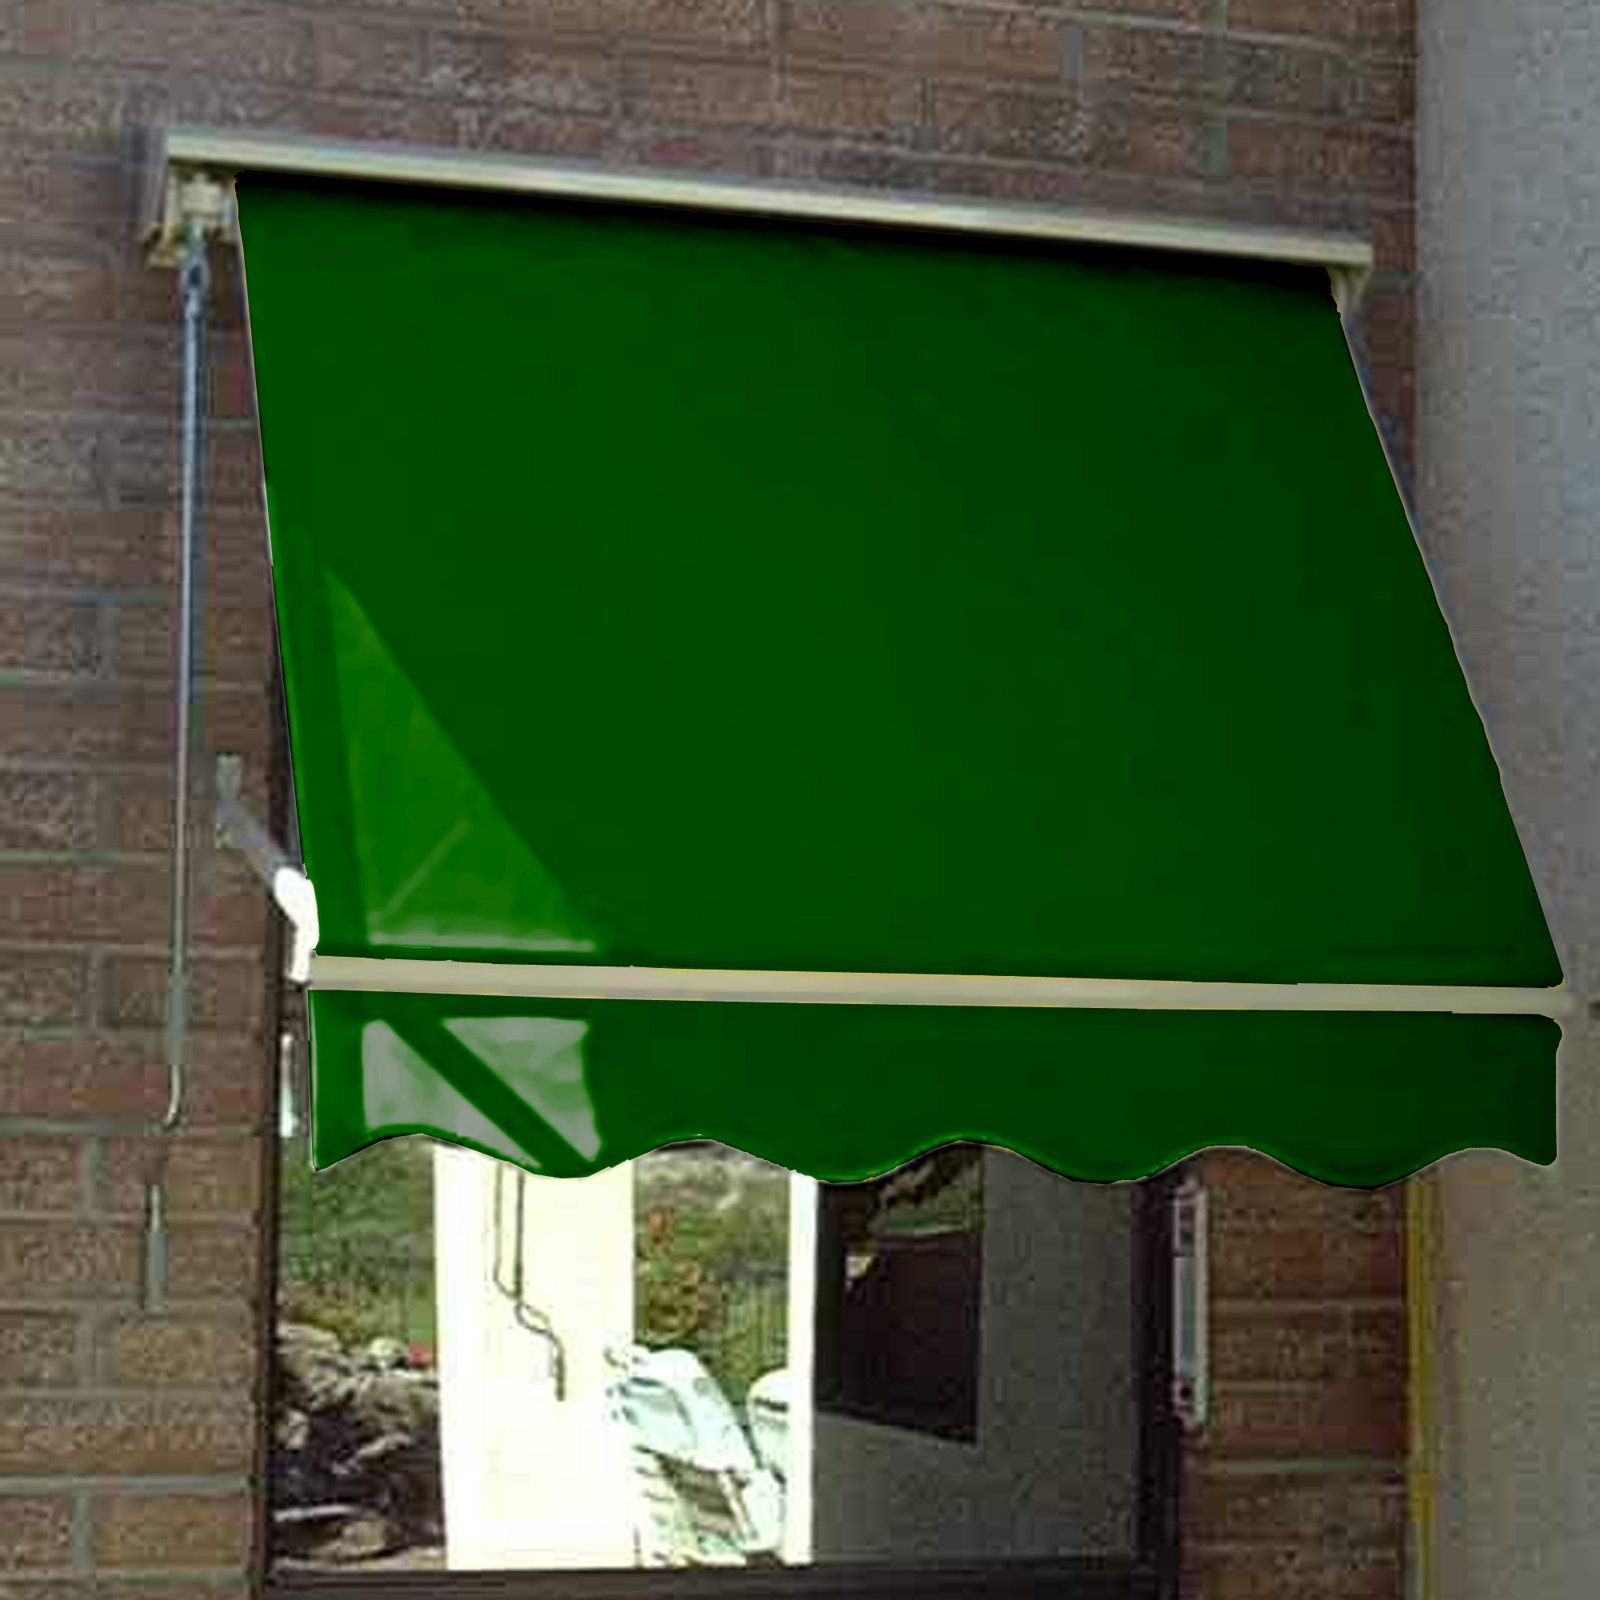 Awntech Nevada 4' Motorized Retractable Slope Awning